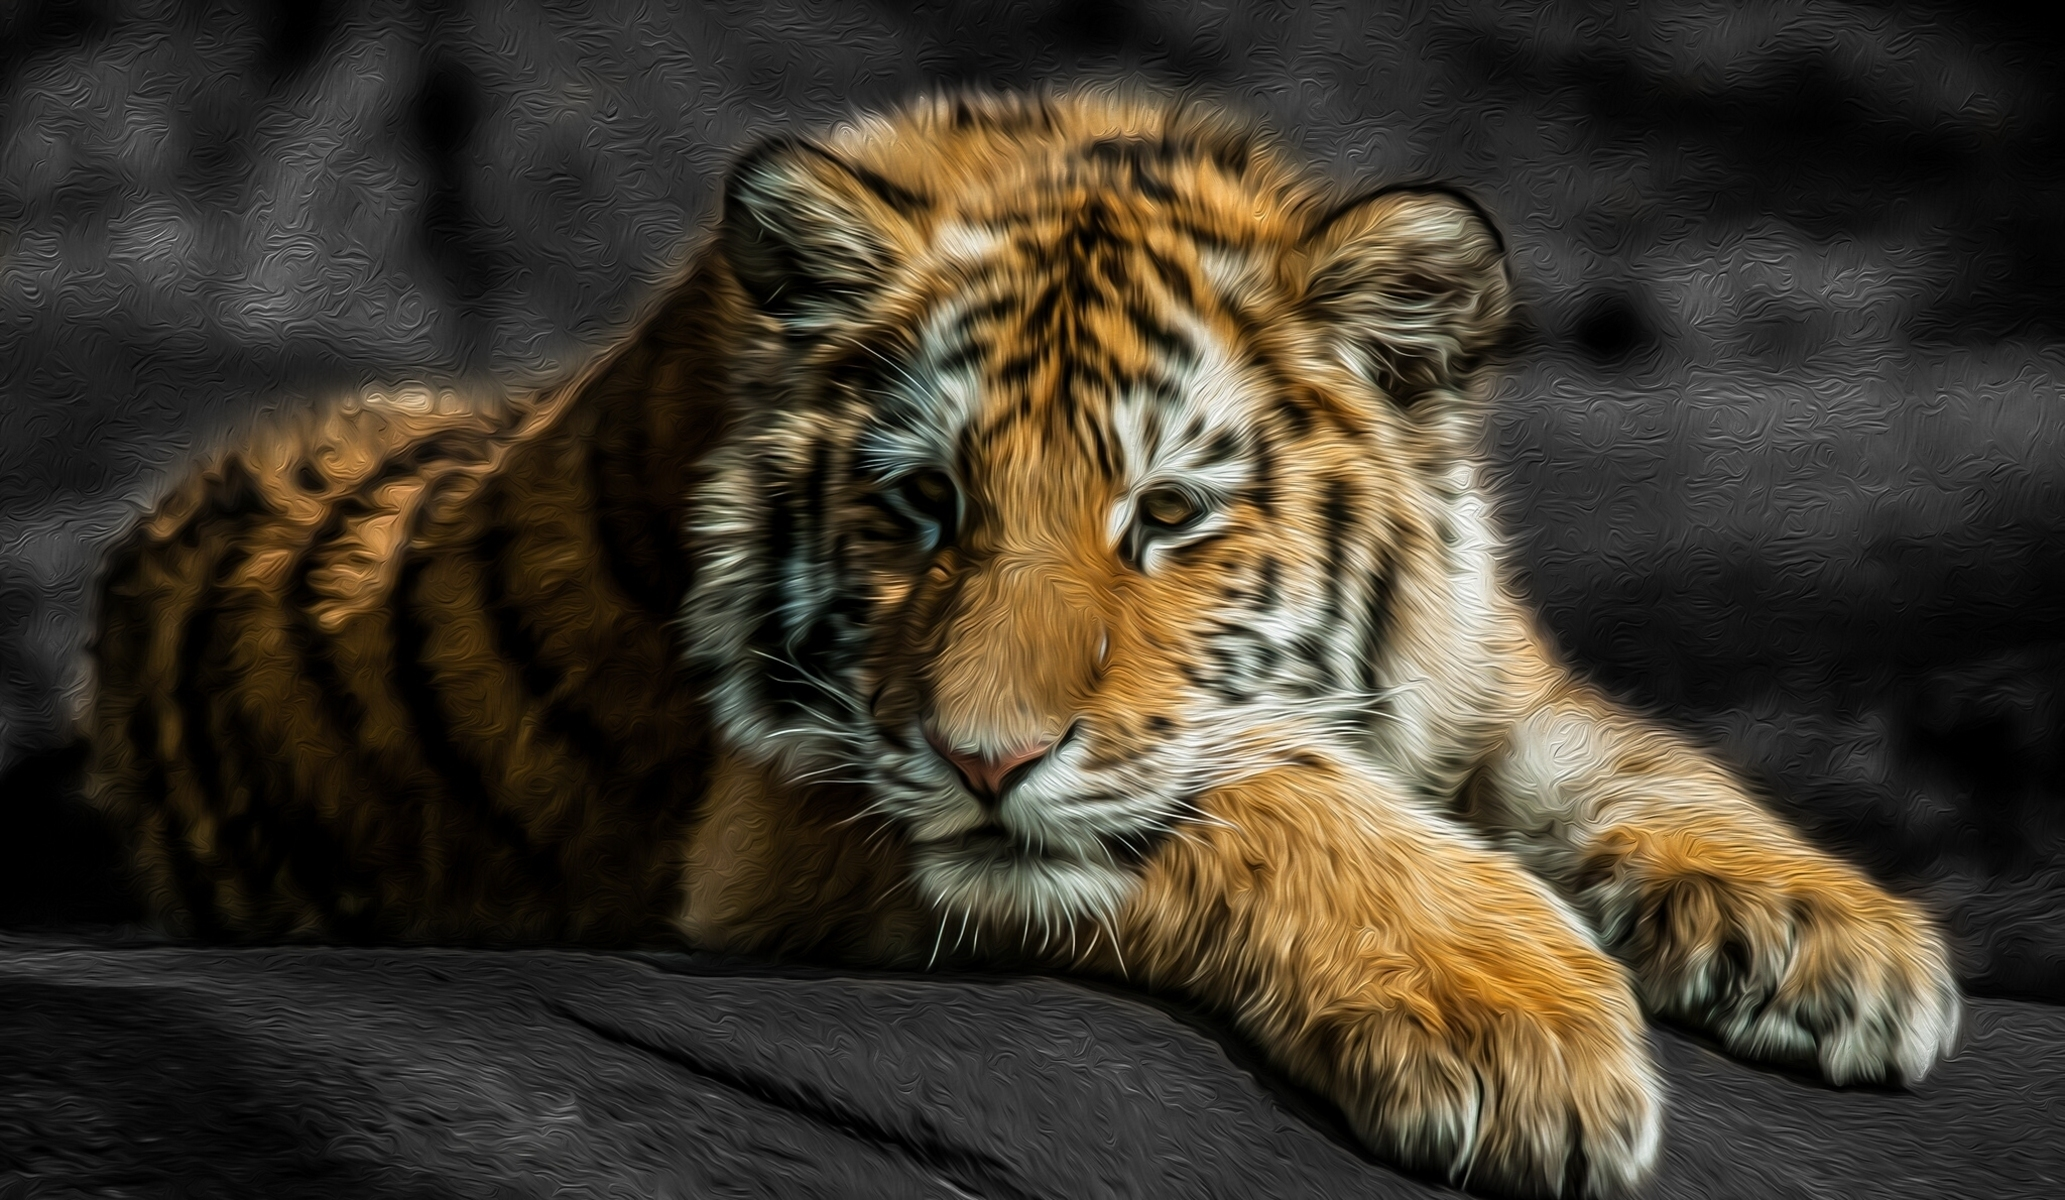 67156 Screensavers and Wallpapers Young for phone. Download Animals, Young, Kitty, Kitten, To Lie Down, Lie, Predator, Tiger, Joey, Tiger Cub pictures for free